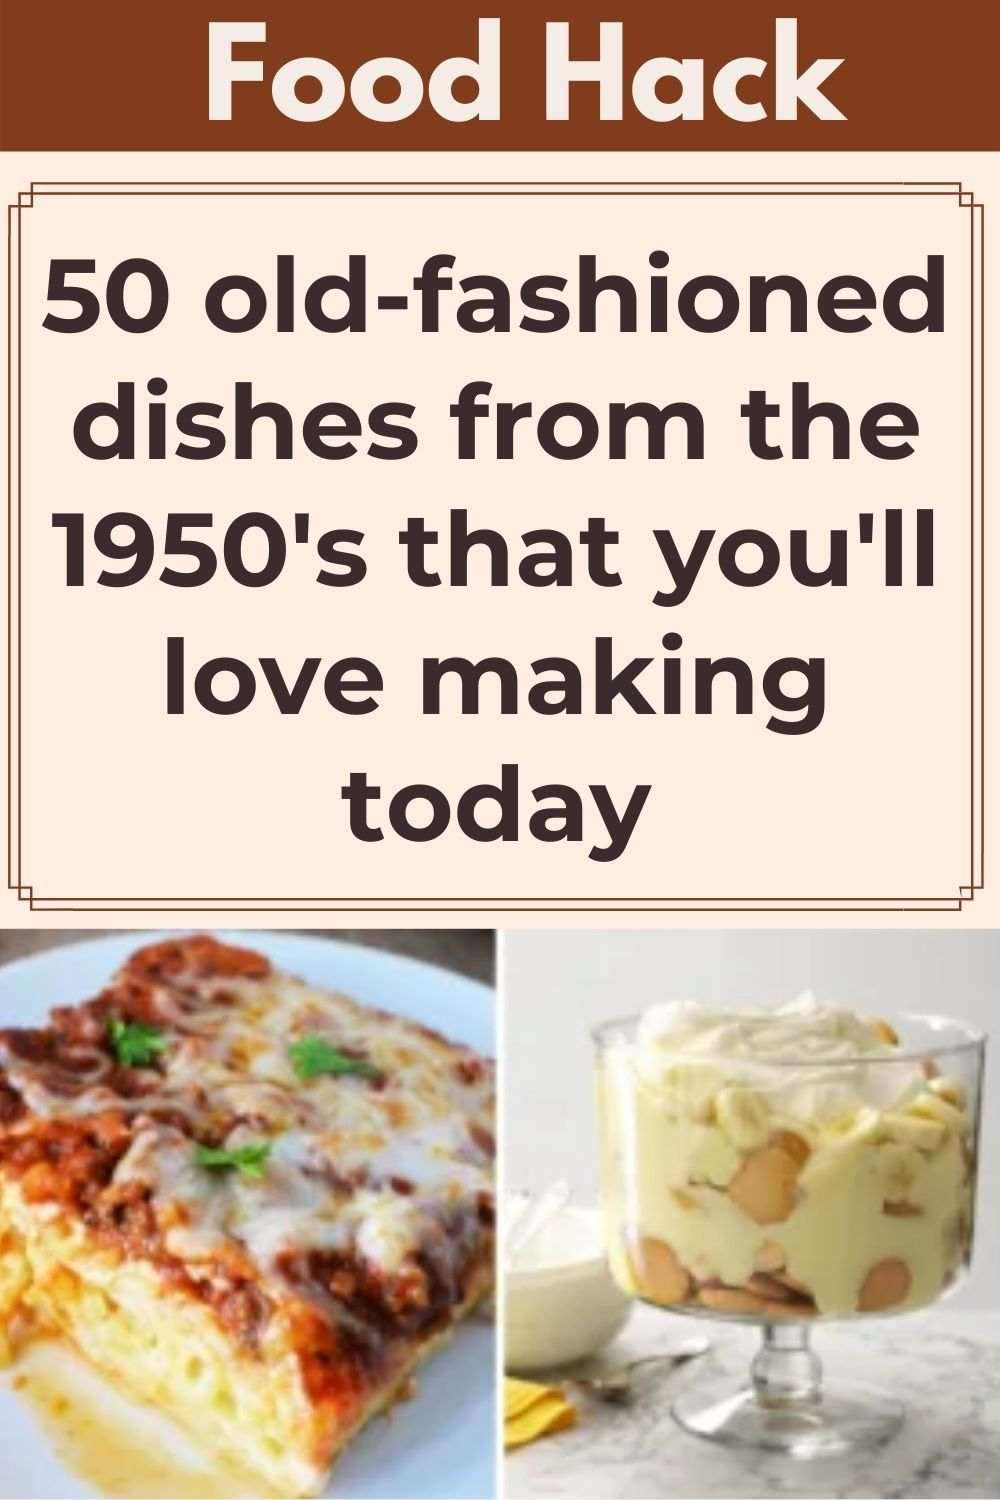 50 old-fashioned dishes from the 1950's that you'l